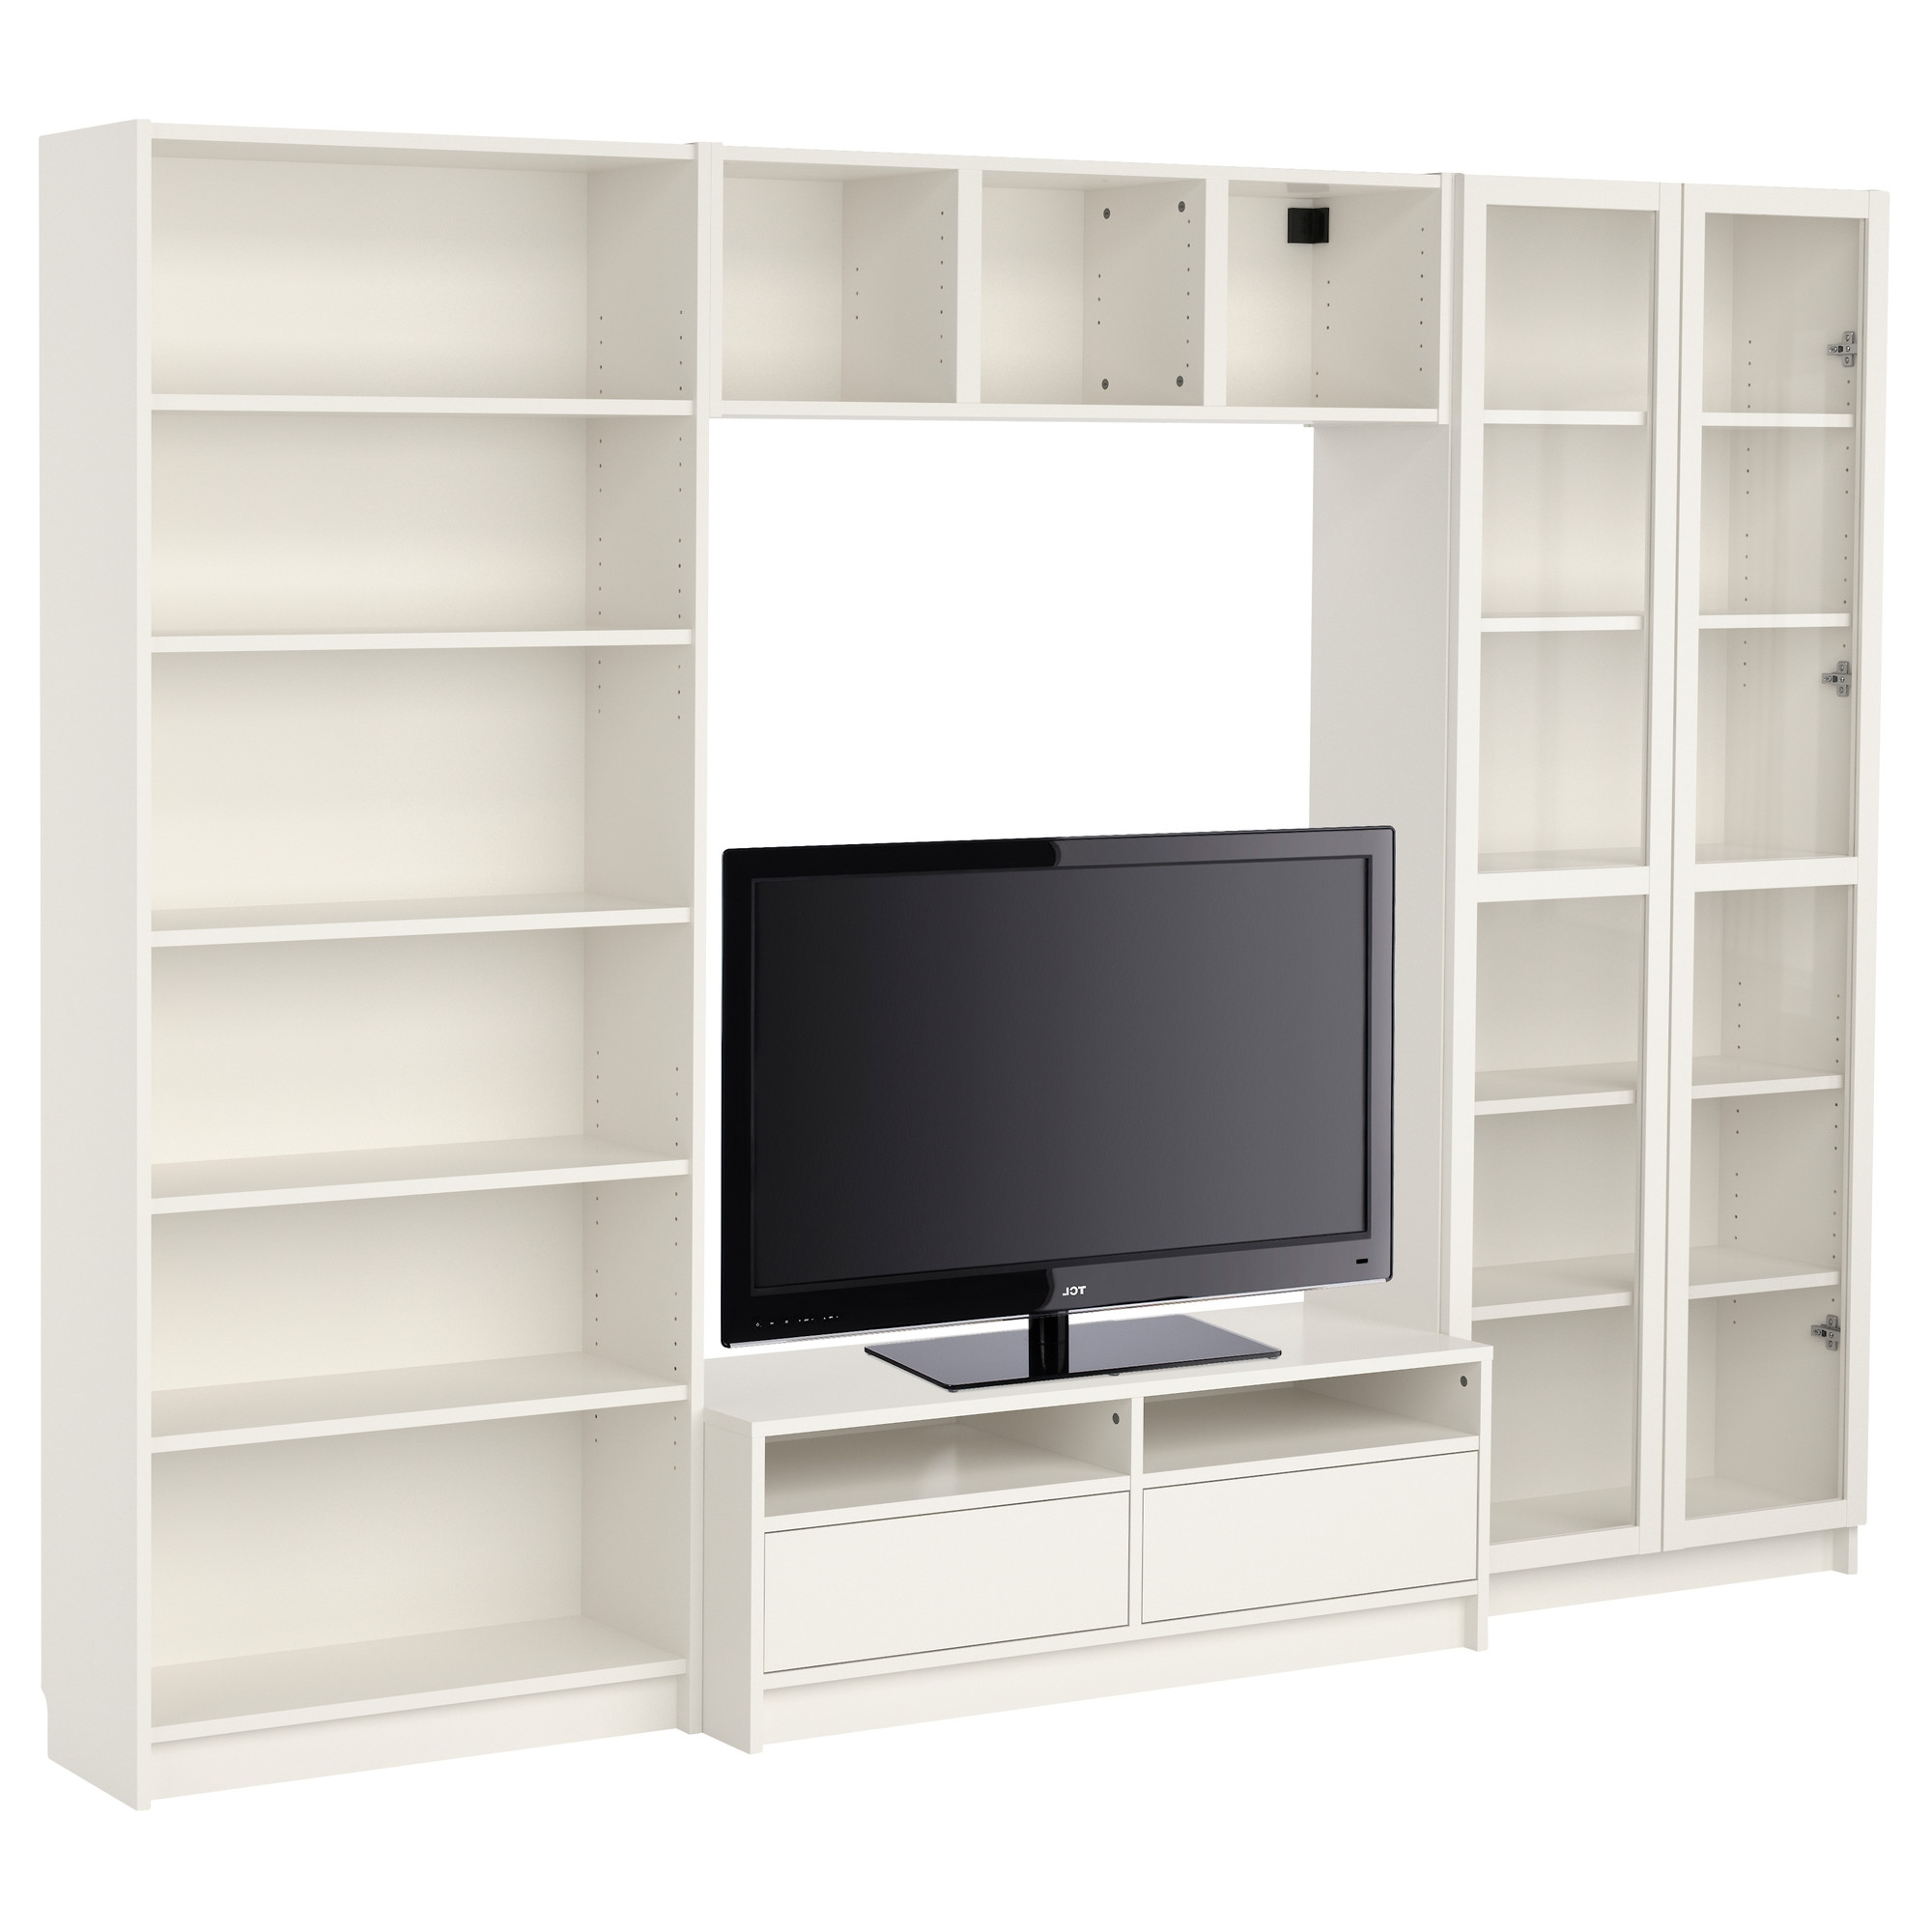 Well Liked Book Case Tv In Billy Bookcase Combination With Tv Bench – White – Ikea–Add (View 14 of 15)